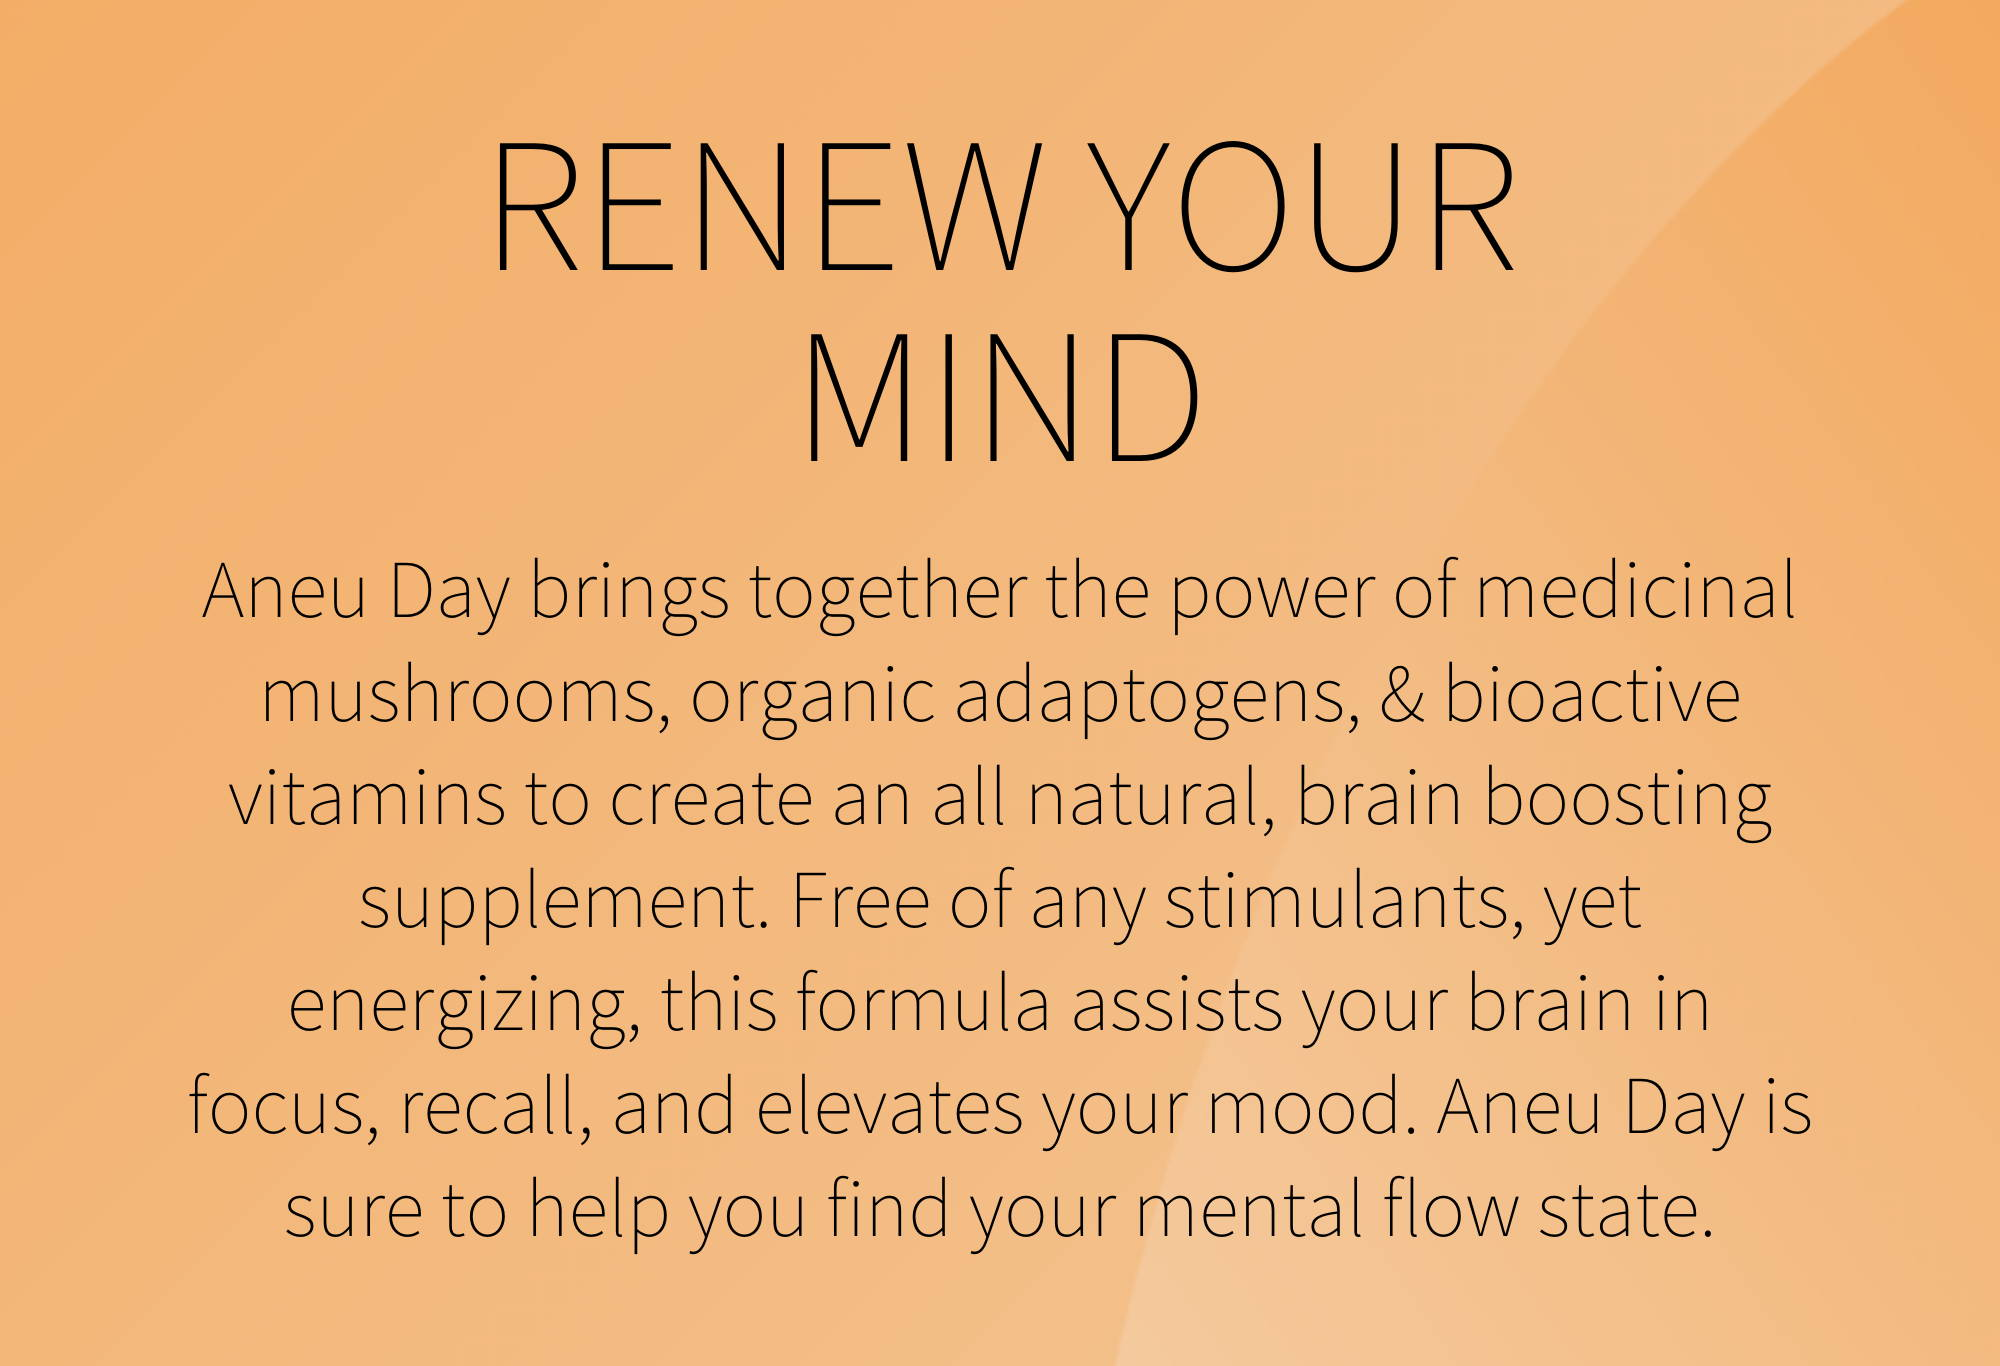 renew your mind with aneu day